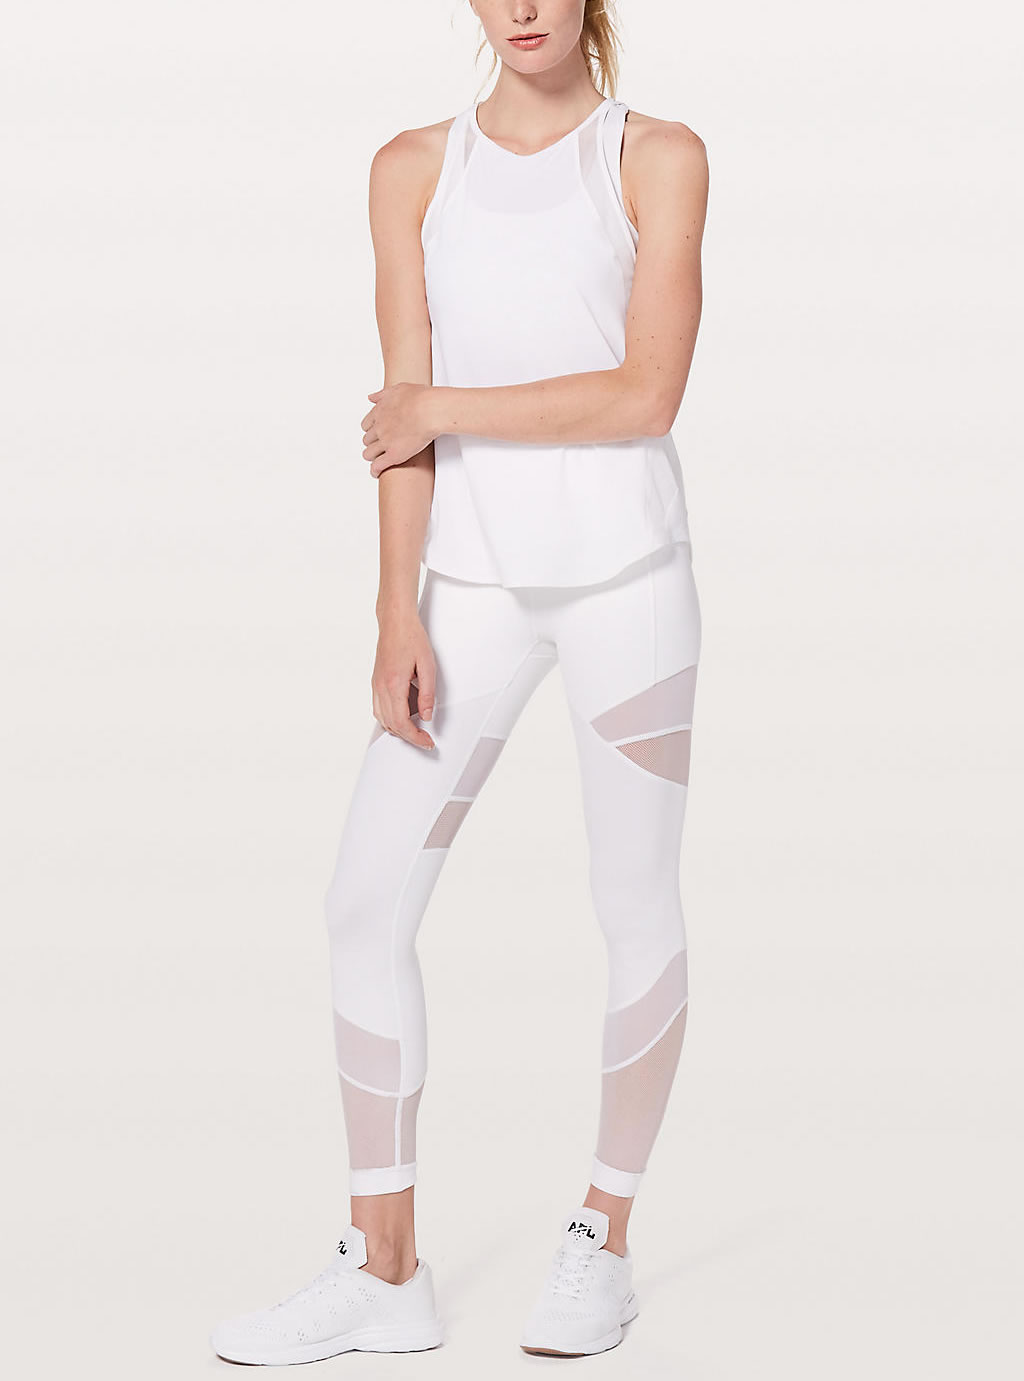 White yoga tights by Lululemon